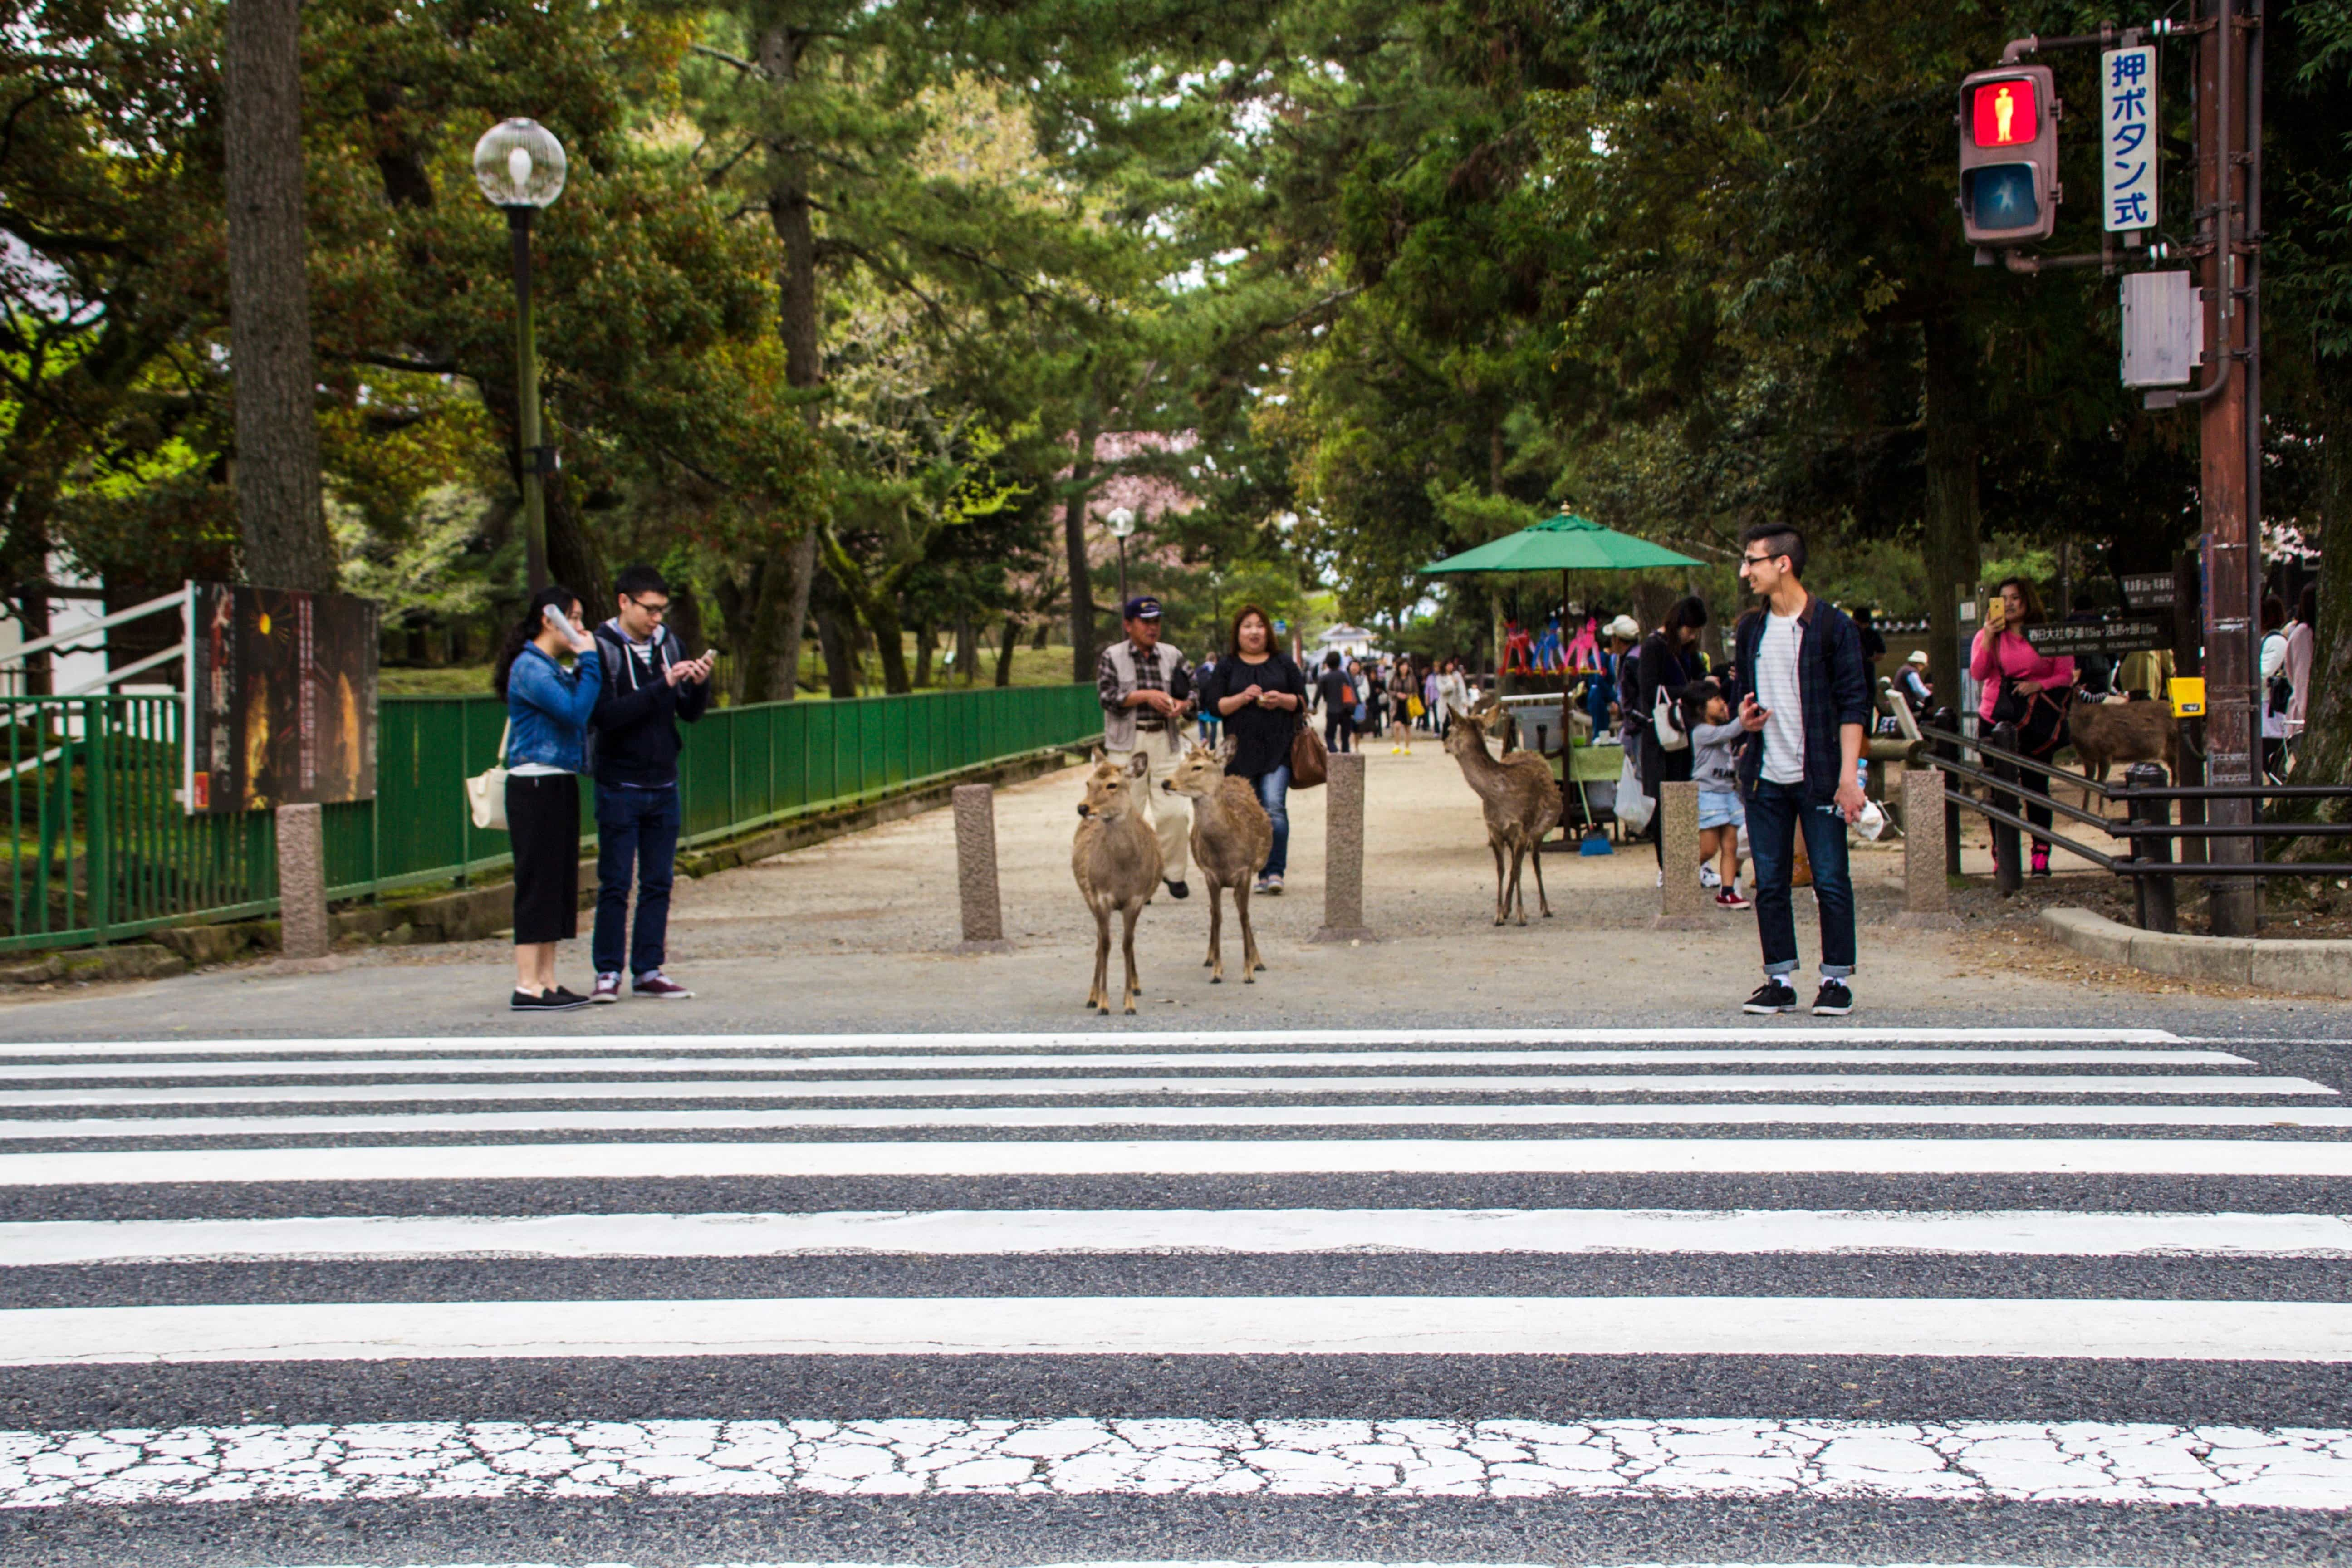 Nara is a very easy day trip for those visiting Japan, as it's located less than an hour from Osaka and Kyoto. Here are 5 things to do in Nara...Read more at www.thefivefoottraveler.com